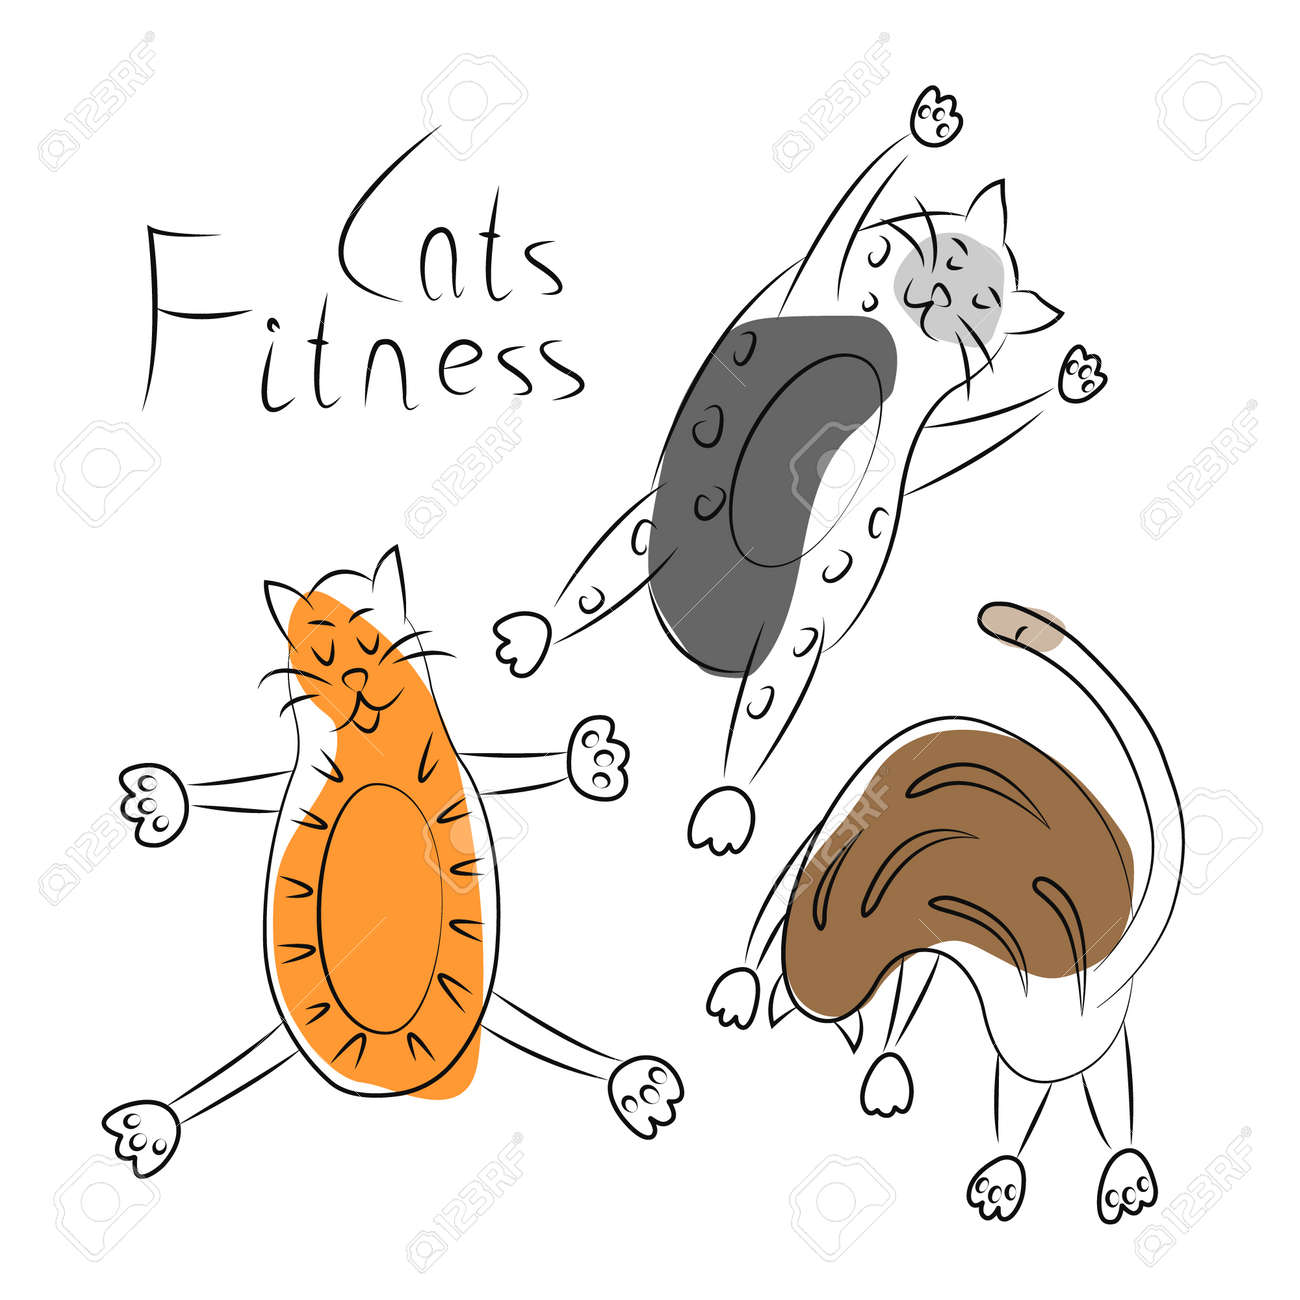 Collection of funny fat cats engaged in sports, fitness, yoga. Simple linear illustration of pets with partial fill. Bright print, logo, emblem, label, badge, icon for vet clinic, children's clothing - 170432709